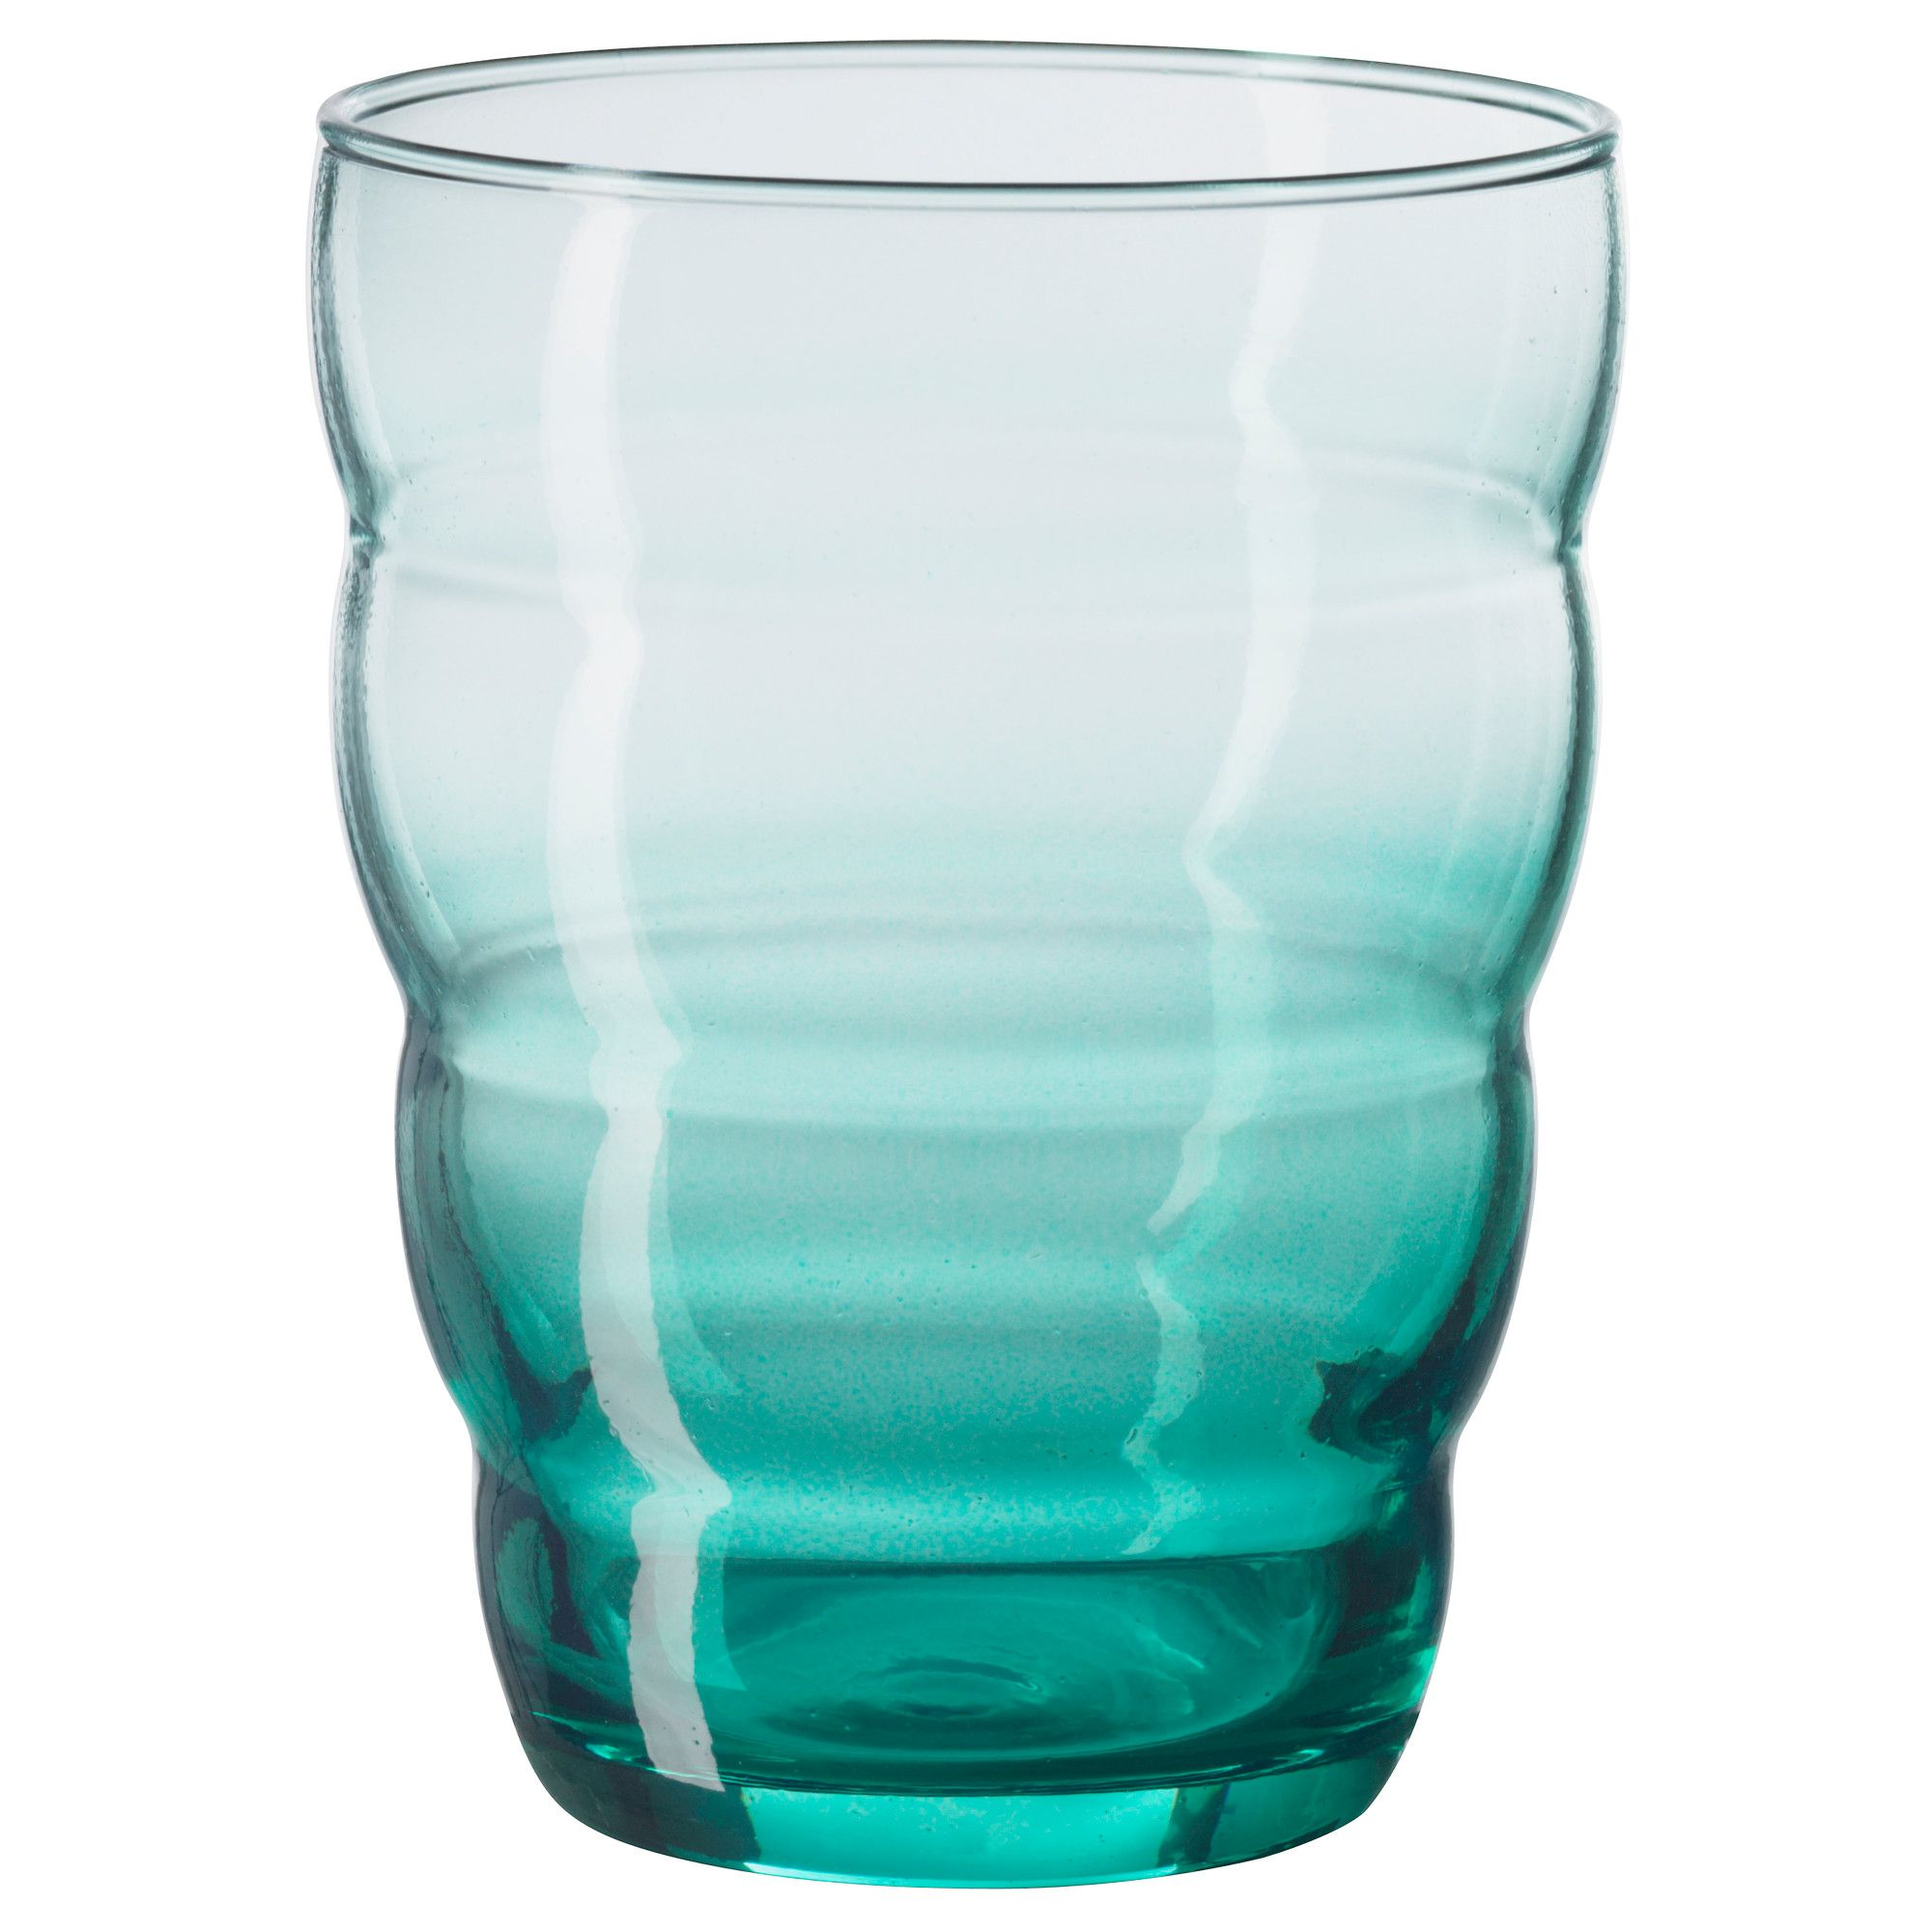 glas ikea ikea begrlig vase the glass vase is mouth blown by a skilled with glas ikea ikea. Black Bedroom Furniture Sets. Home Design Ideas